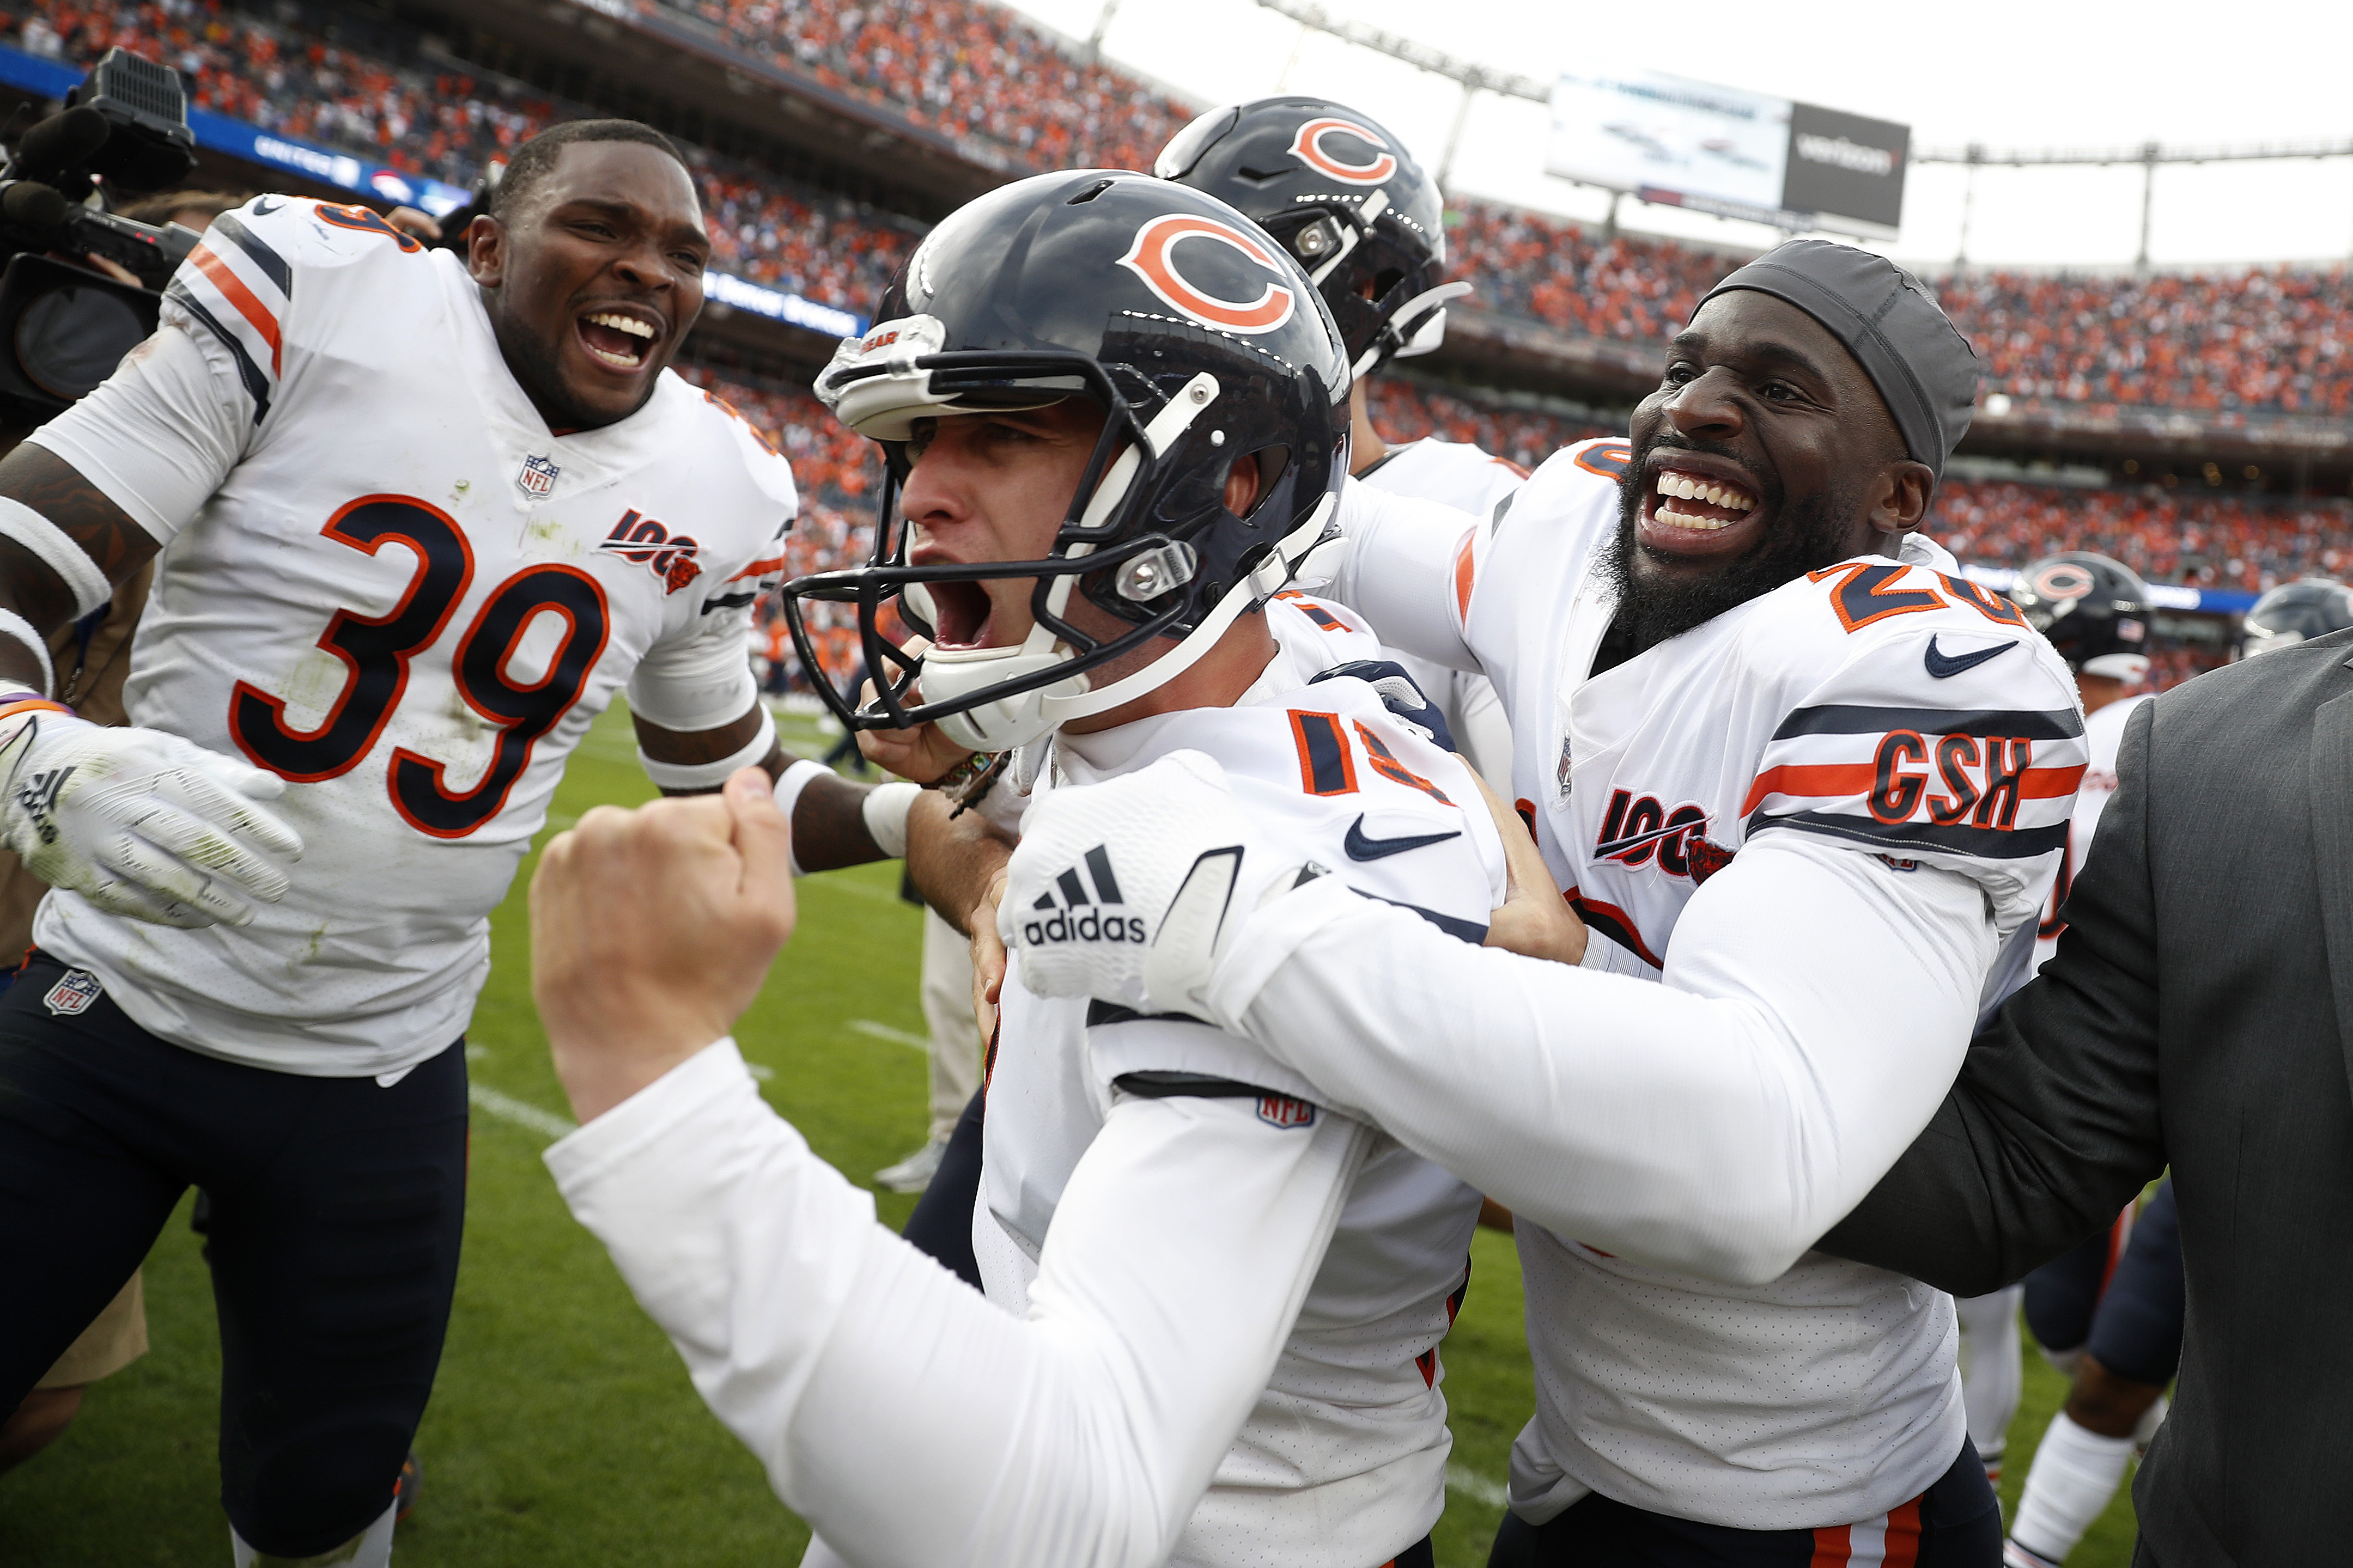 Chicago Bears kicker Eddy Pineiro, center, celebrates his game-winning field goal with free safety Eddie Jackson (39) and cornerback Prince Amukamara against the Denver Broncos after an NFL football game, Sunday, Sept. 15, 2019, in Denver.